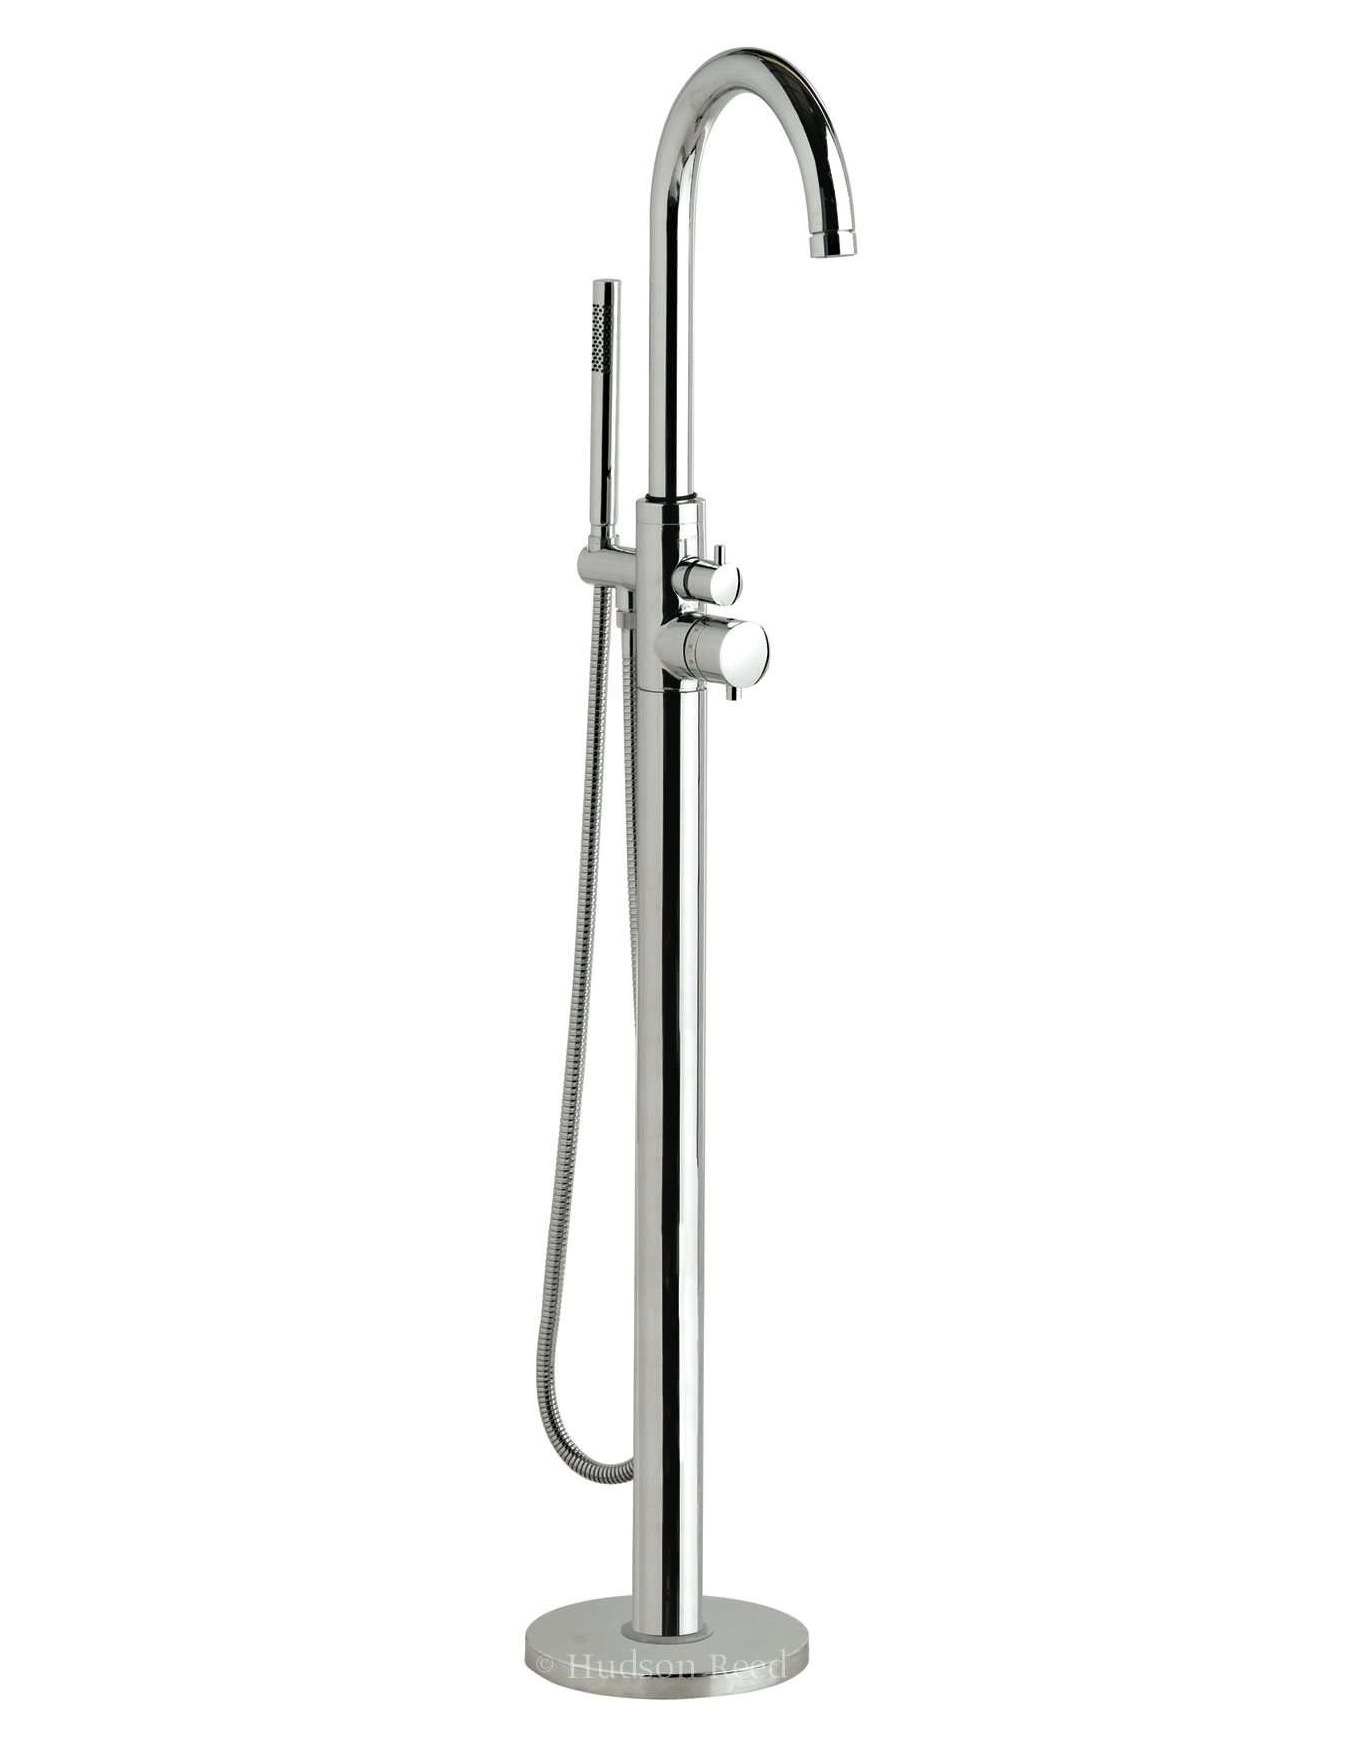 Hudson Reed Thermostatic Single Lever Mono Bath Shower Mixer Tap